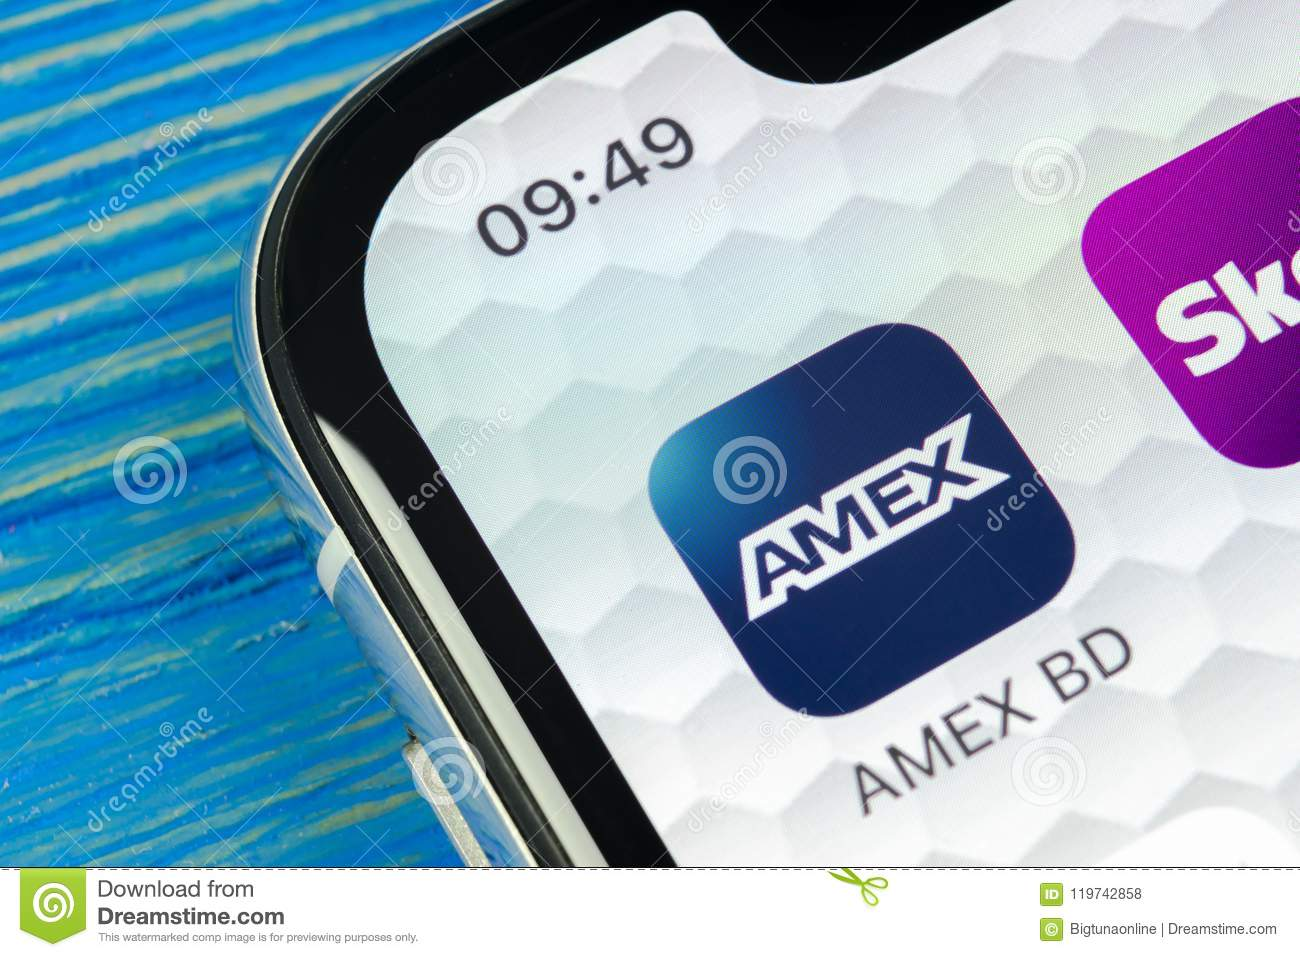 Amex Application Icon On Apple Iphone X Smartphone Screen Close Up Amex App Icon American Express Is An Online Electronic Financ Editorial Stock Photo Image Of Payment Marketing 119742858